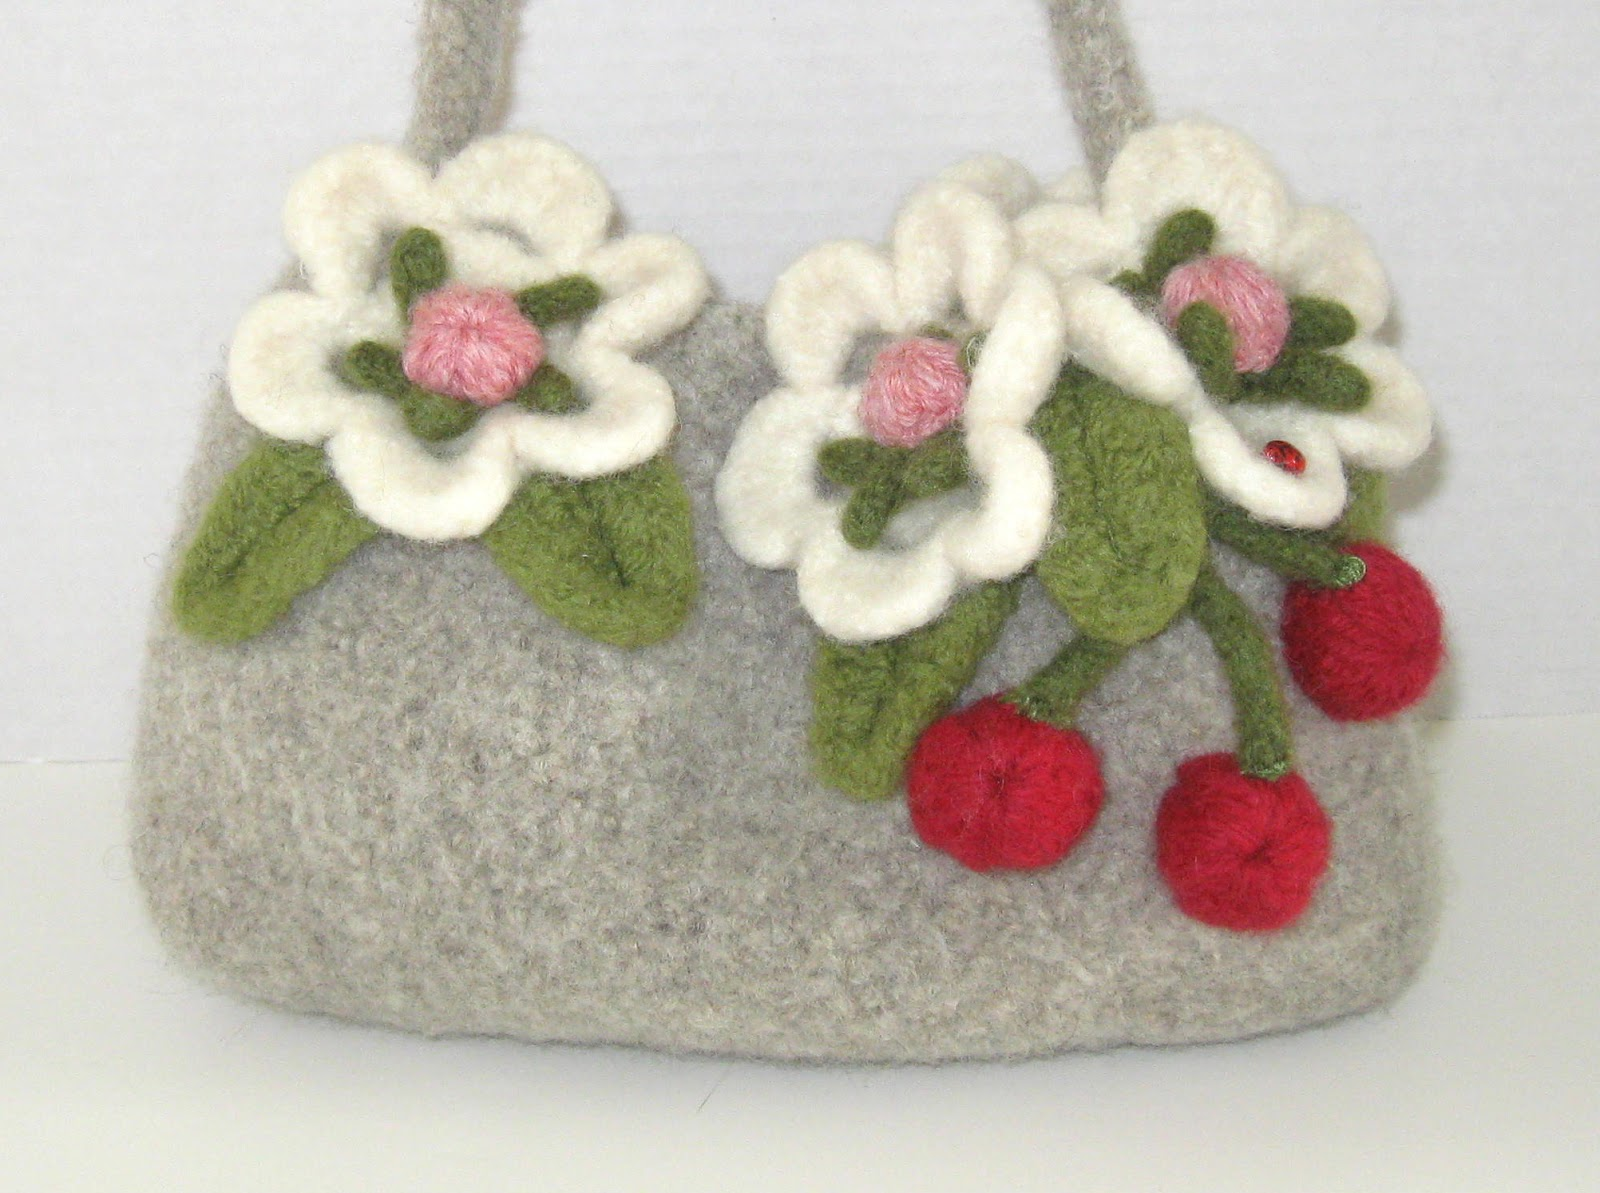 Woolen Crochet Purse : Felted wool crocheted purses Yen4Yarn